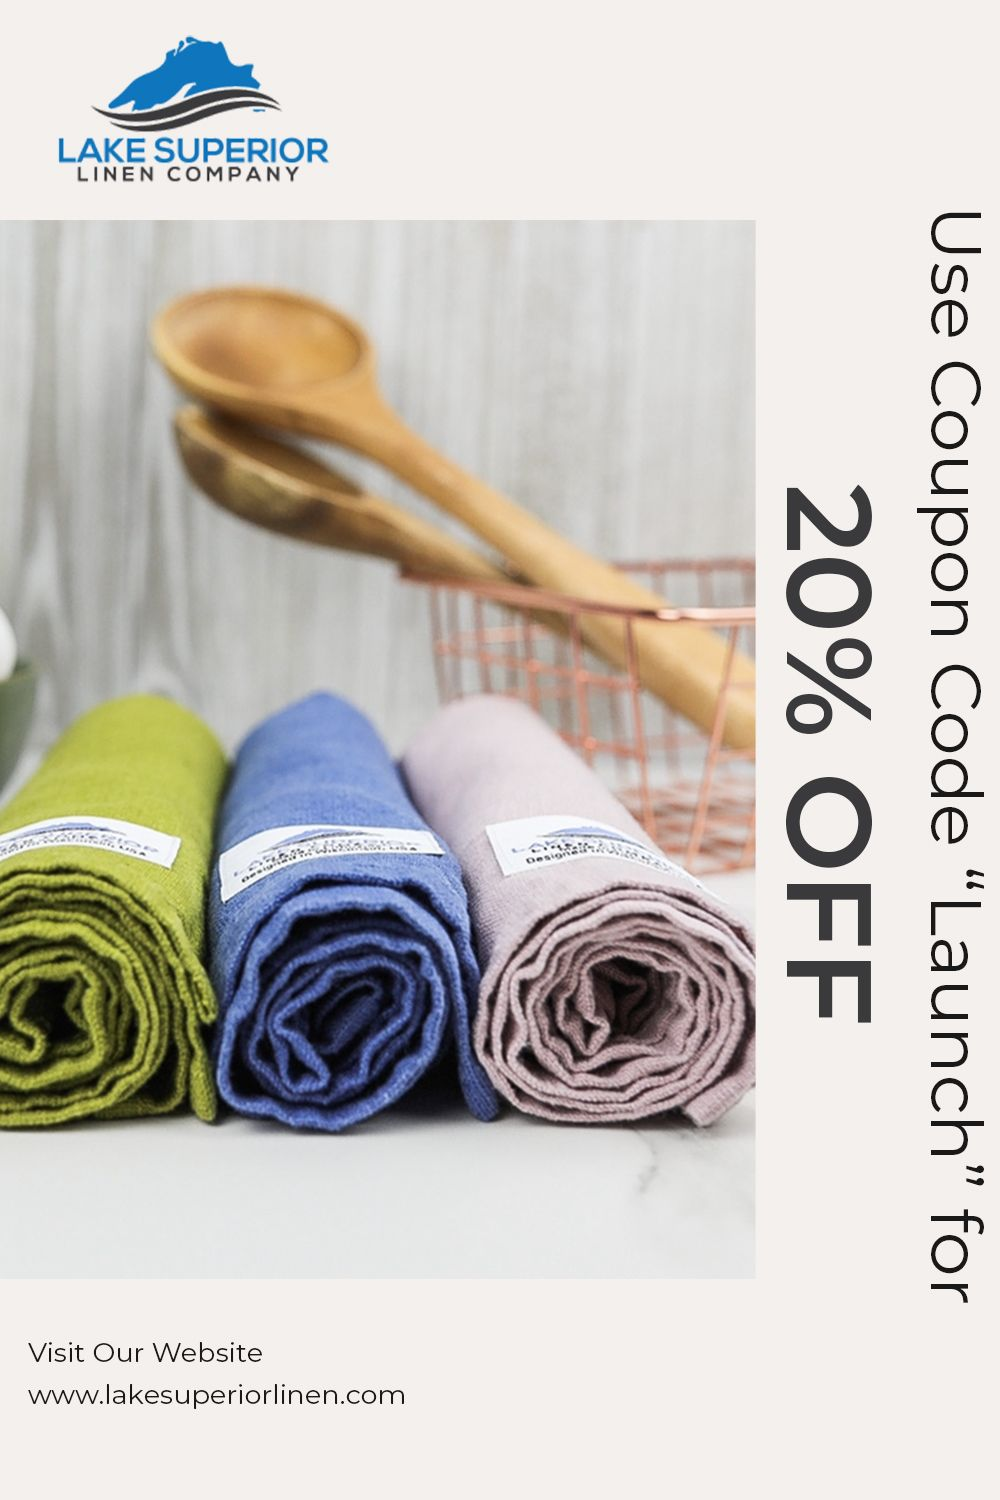 Linen Kitchen Towels In 2020 Kitchen Towels Linen Kitchen Towels Towel Collection